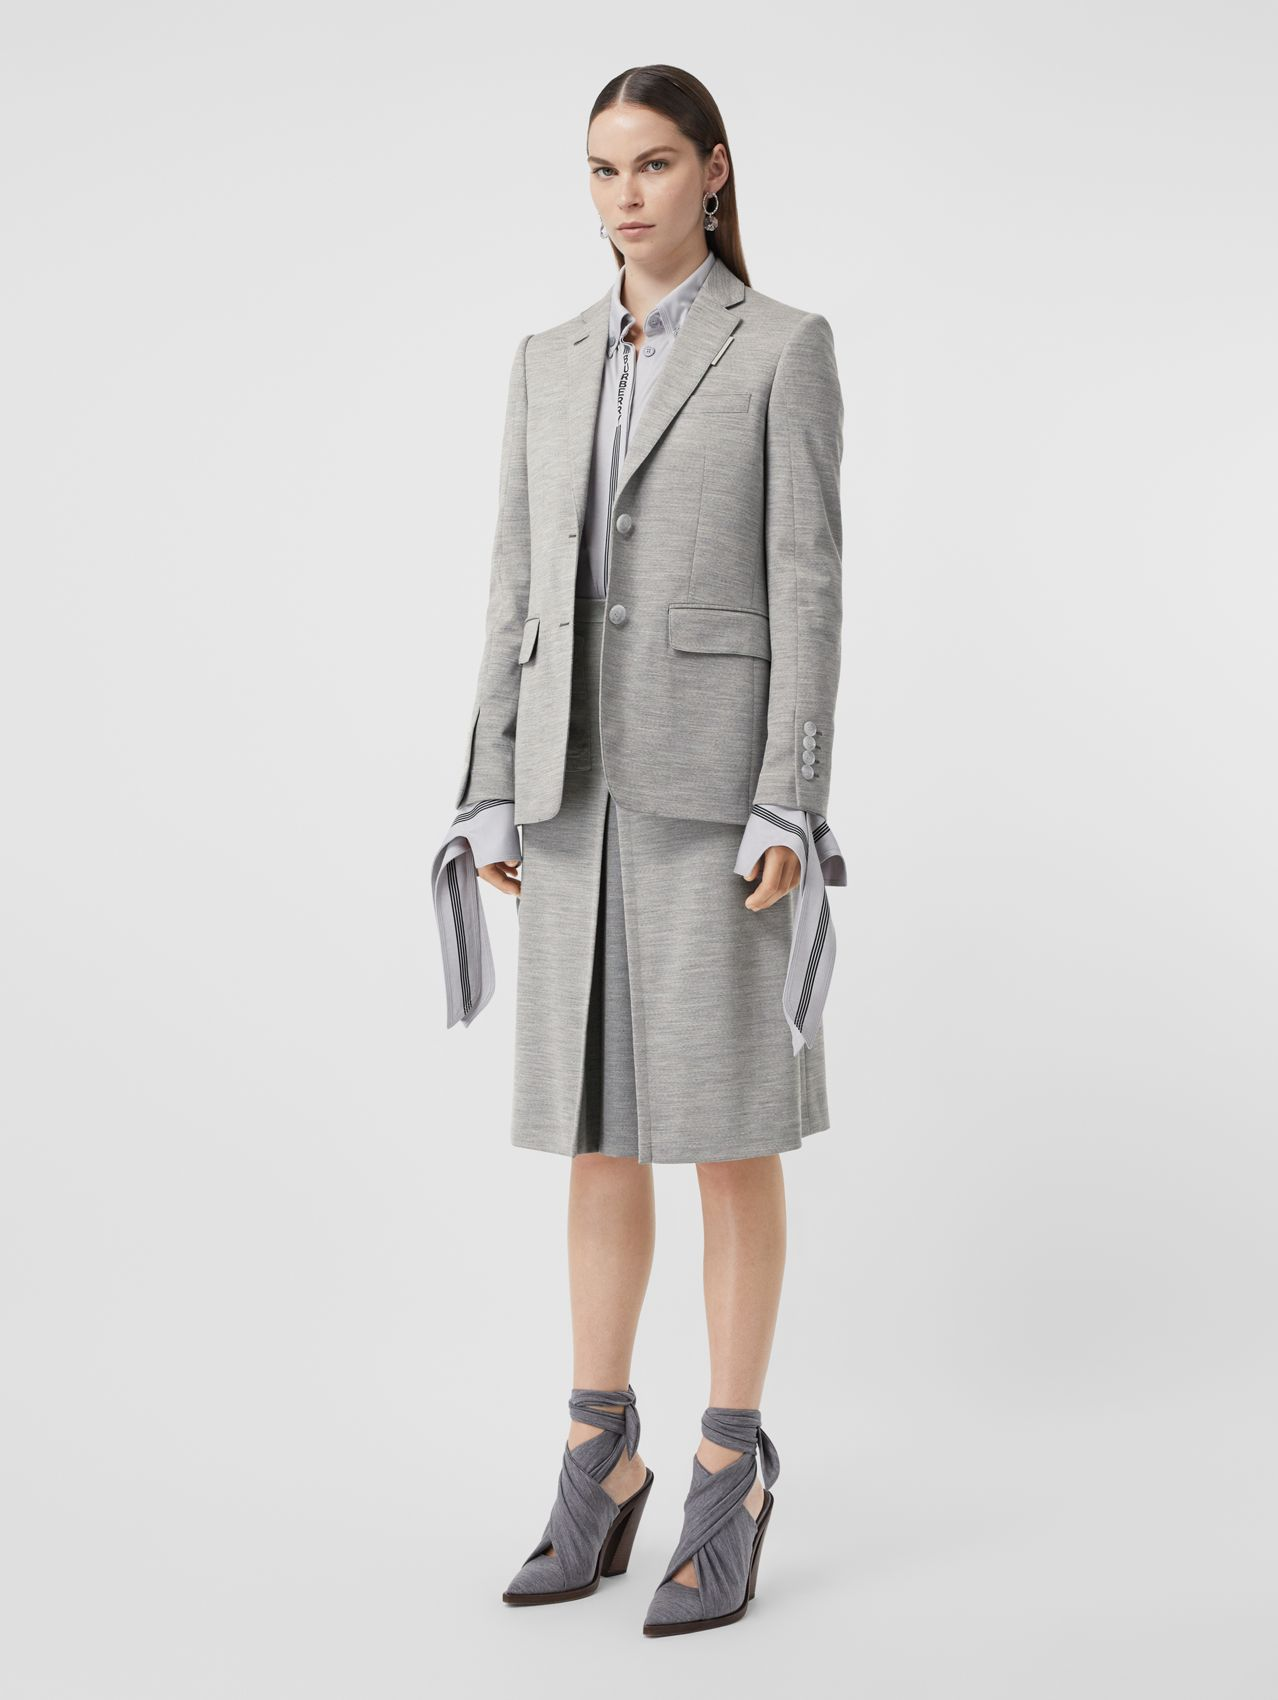 Technical Wool Jersey Blazer in Grey Taupe Melange